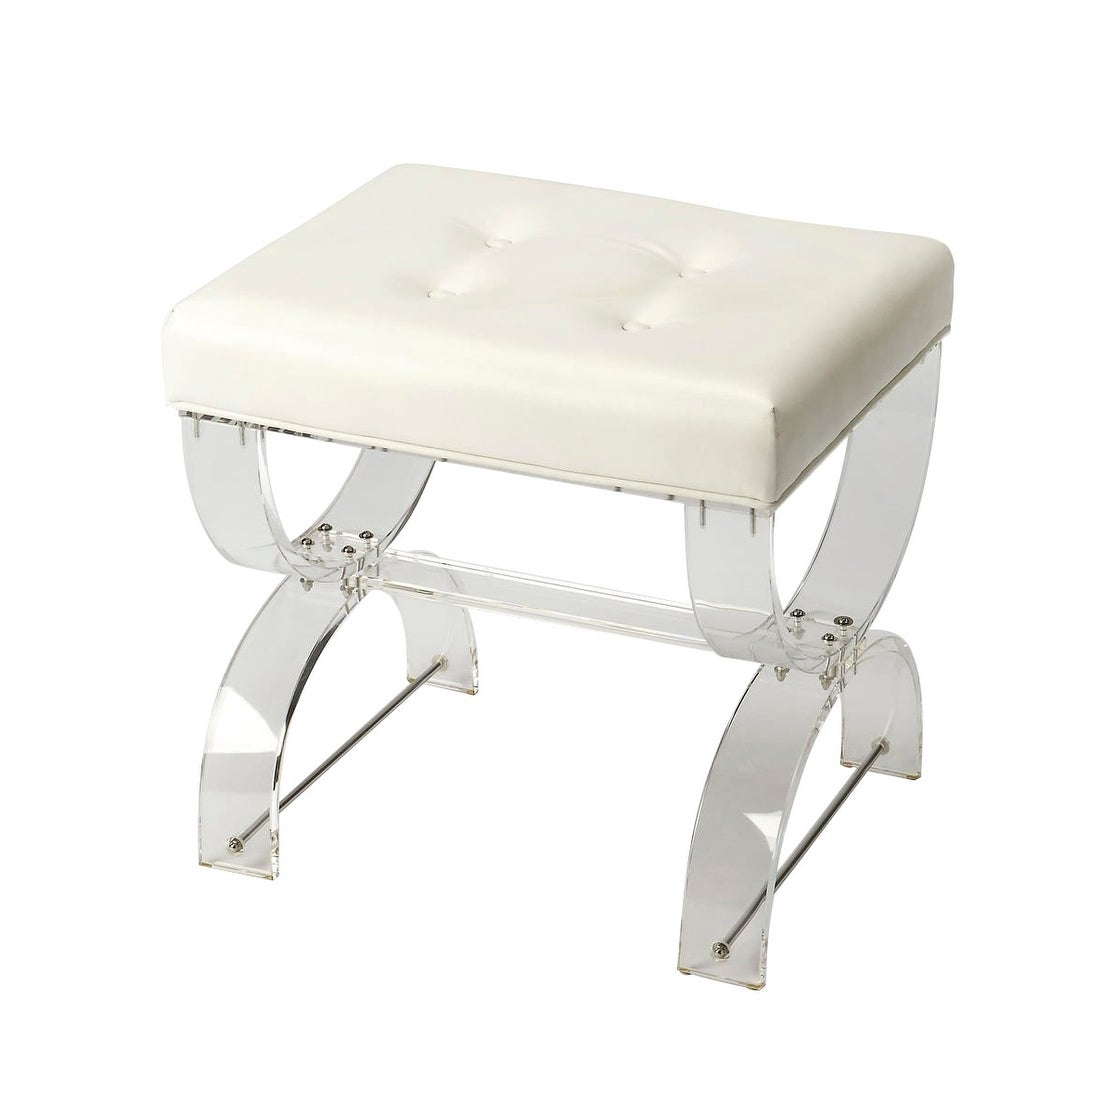 Image of: Shop Black Friday Deals On Modern Clear Acrylic Rectangular Vanity Stool White Overstock 28845747